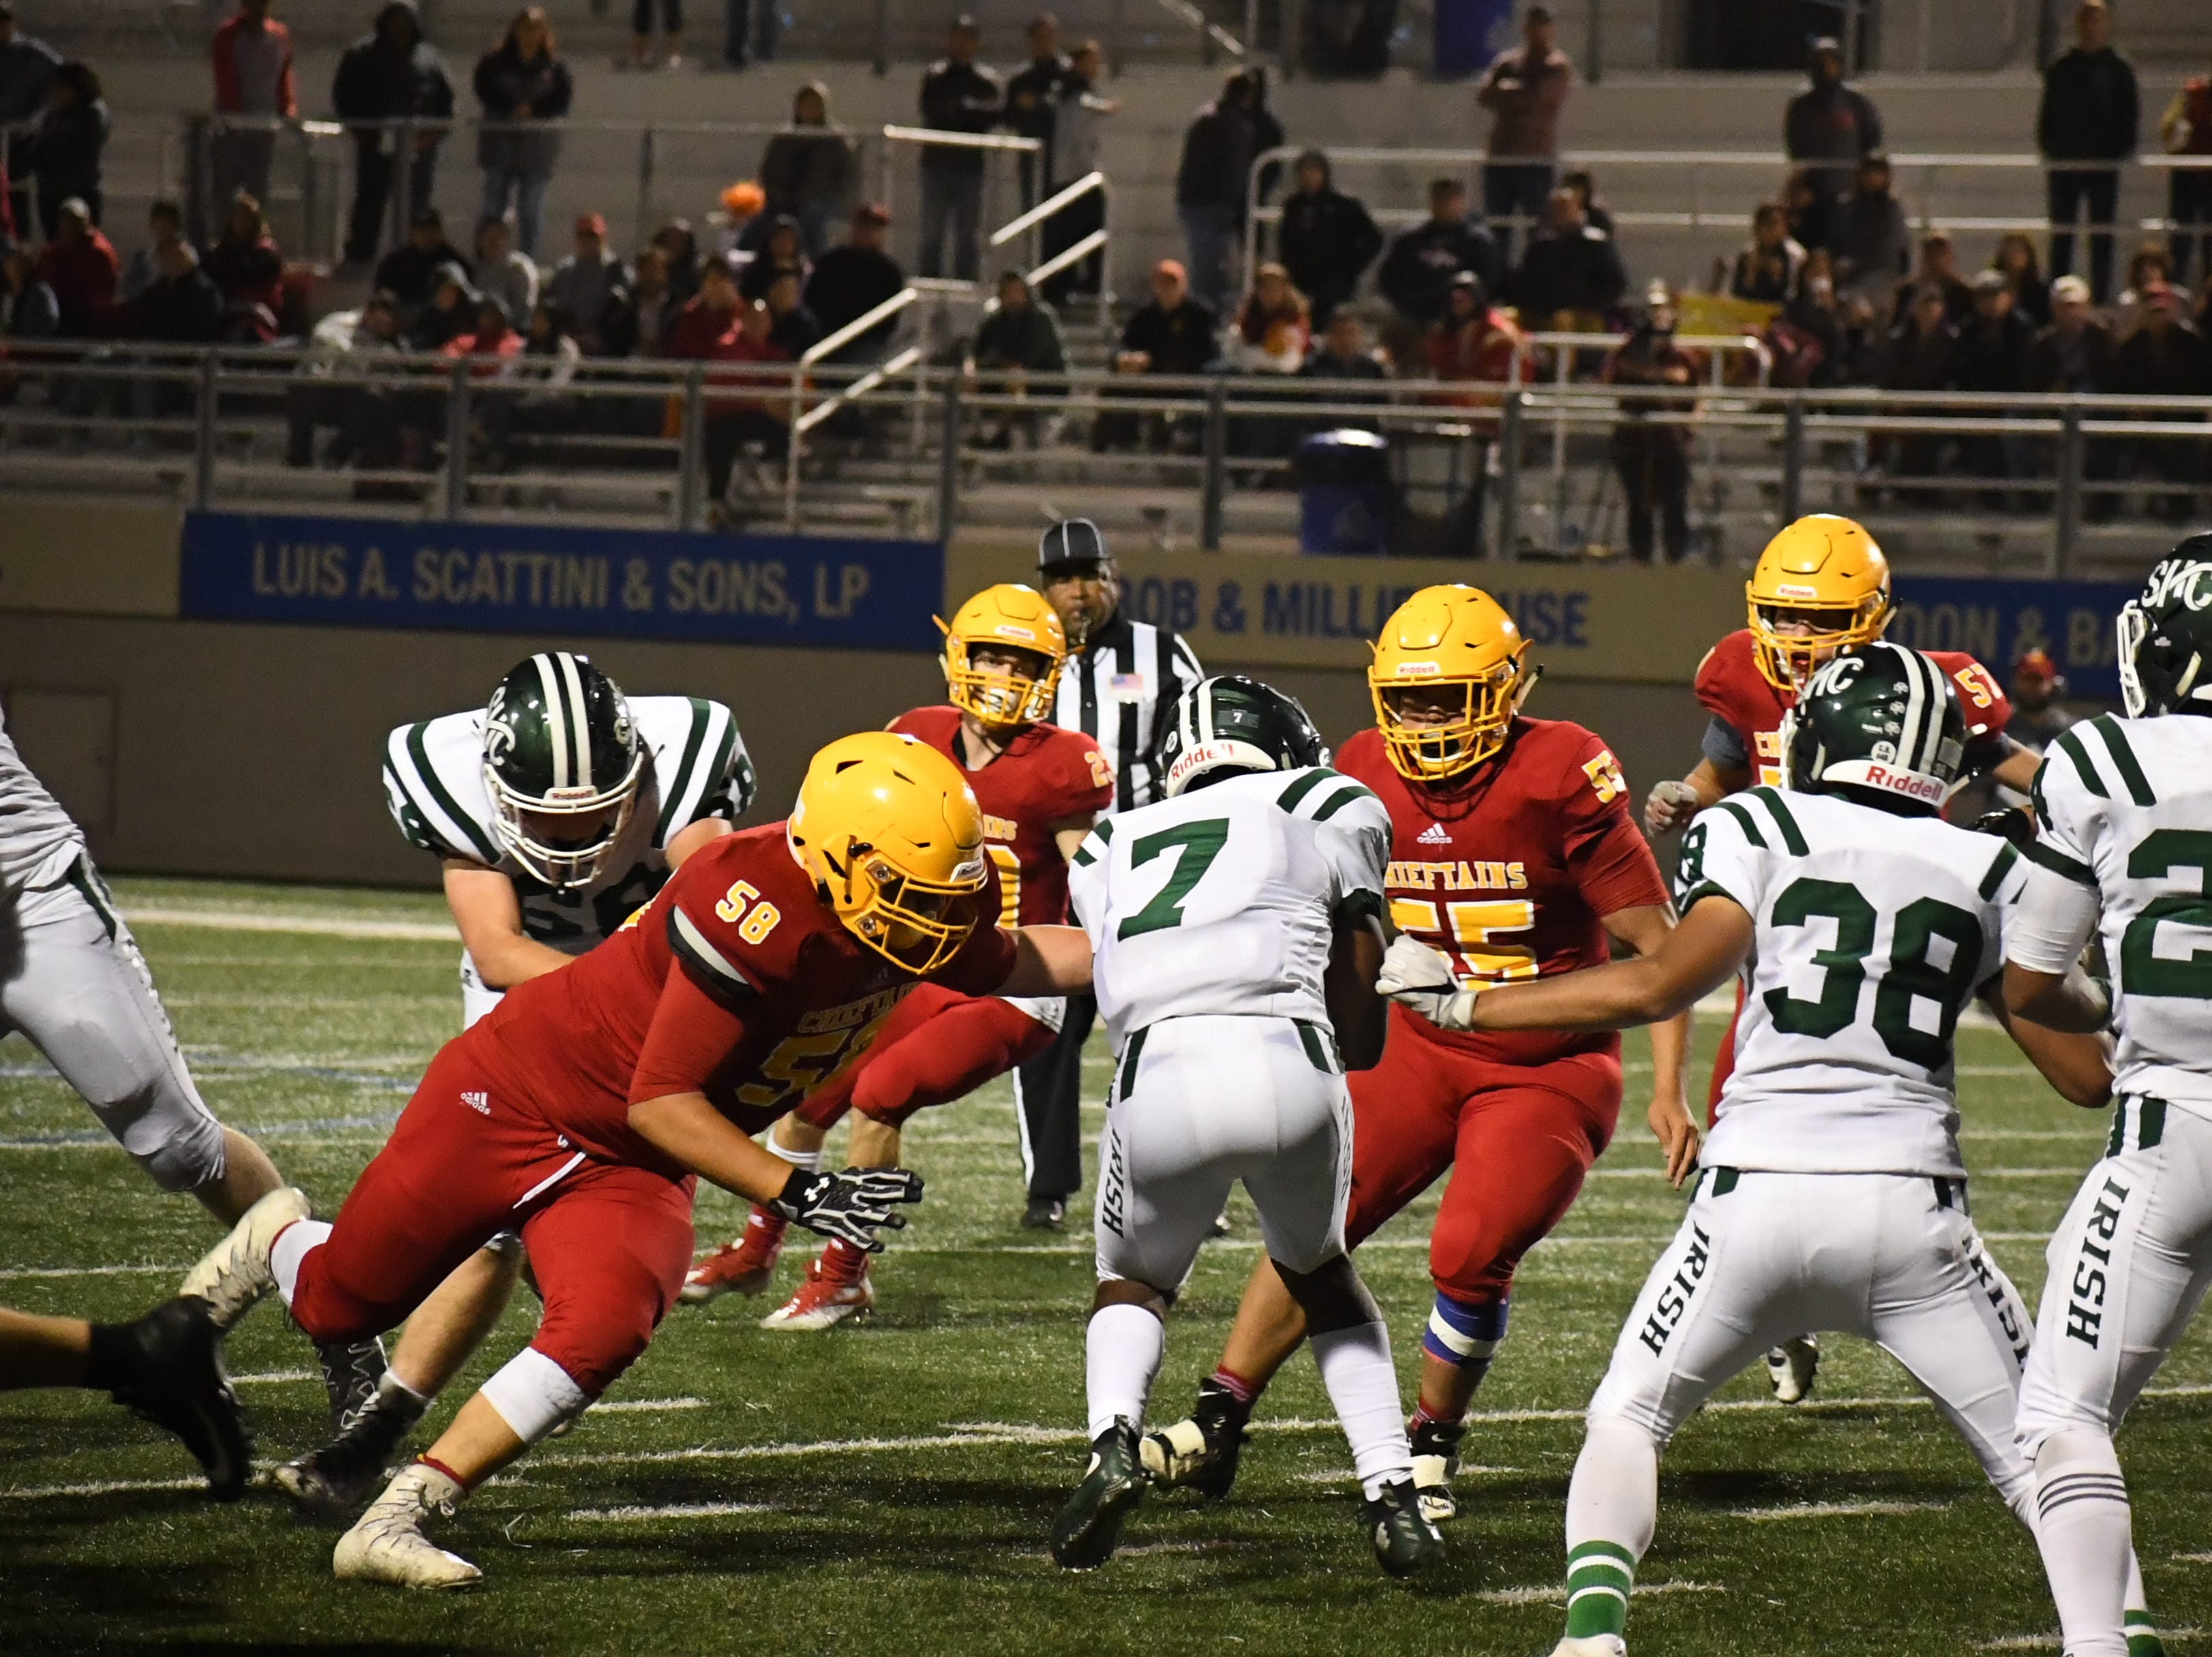 Palma defenders Daniel Cabrera (58) and Jeric Magsambol (55) fill the gap to tackle a Sacred Heart Cathedral wide receiver.